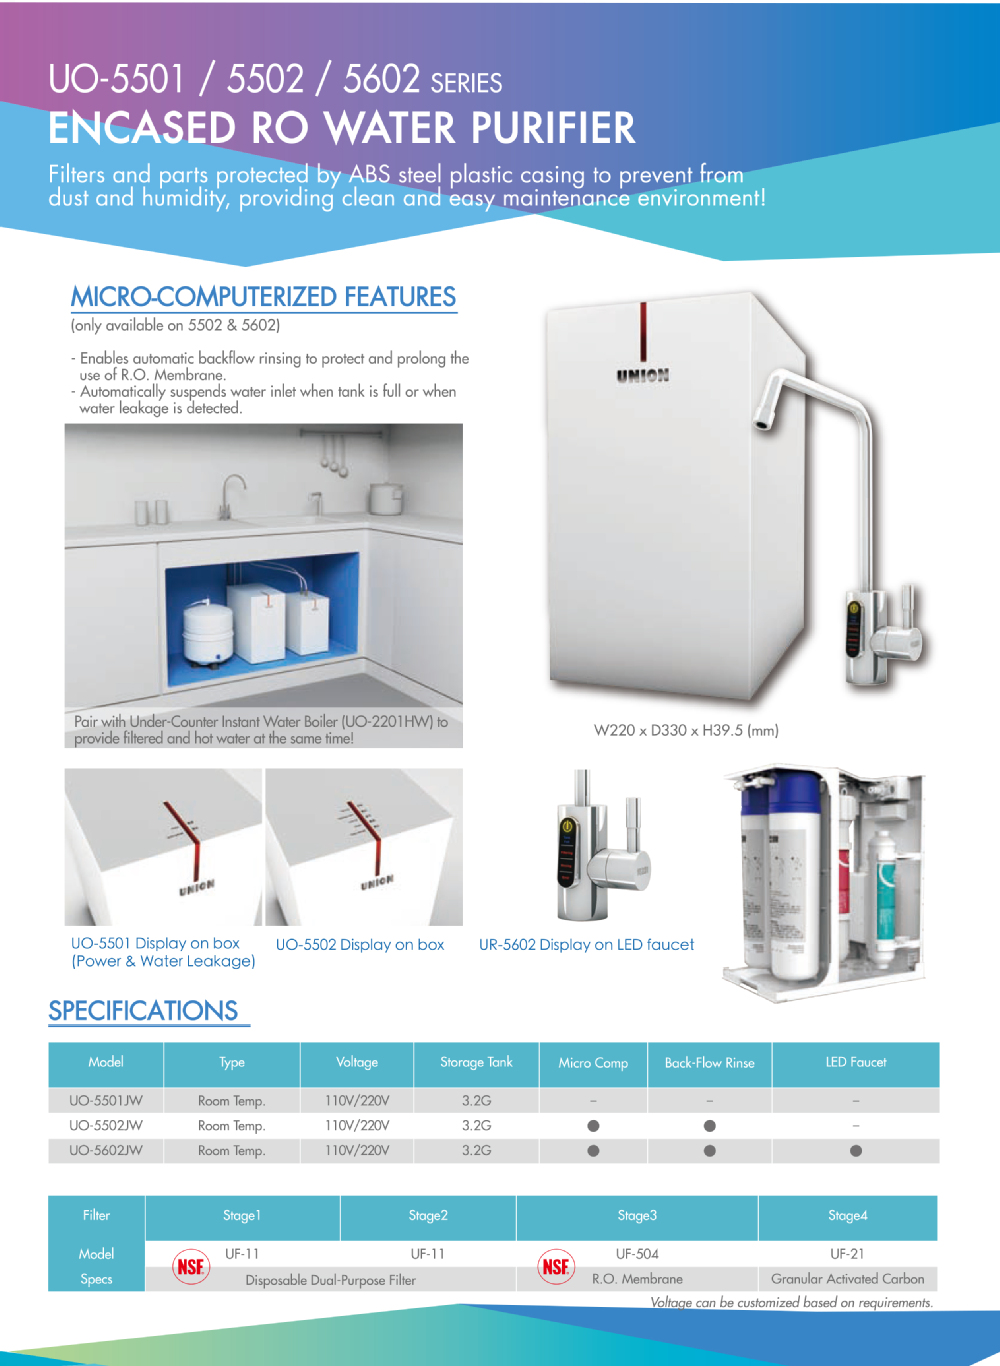 UO-5602JW-R5 Micro Computerized Encased Under Counter / Under Sink LED Faucet RO Water Purifier